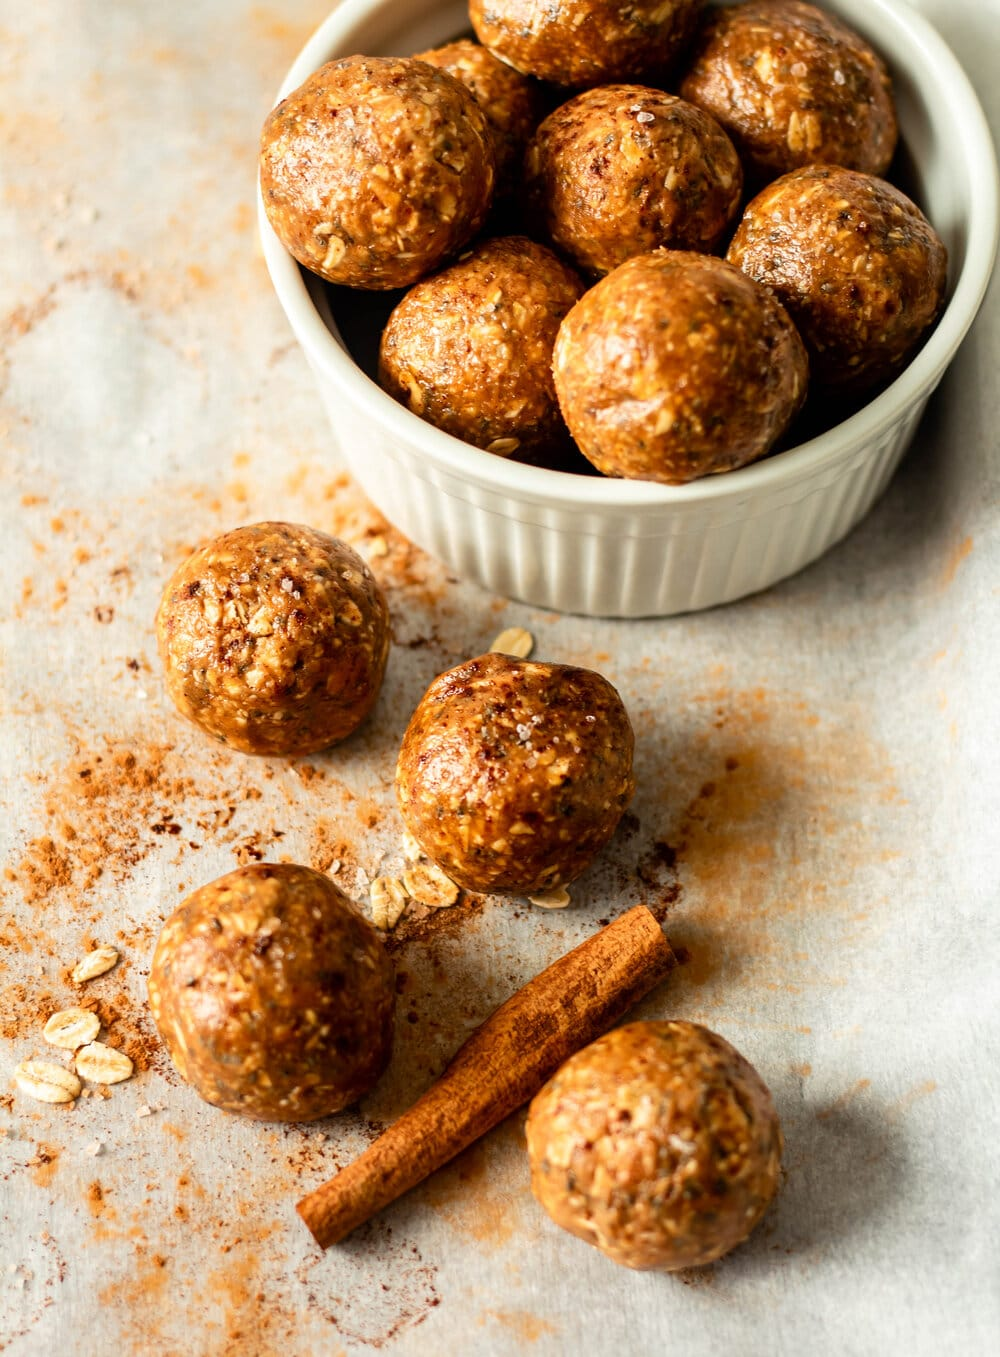 snickerdoodle energy bites in a white bowl with cinnamon stick on the side